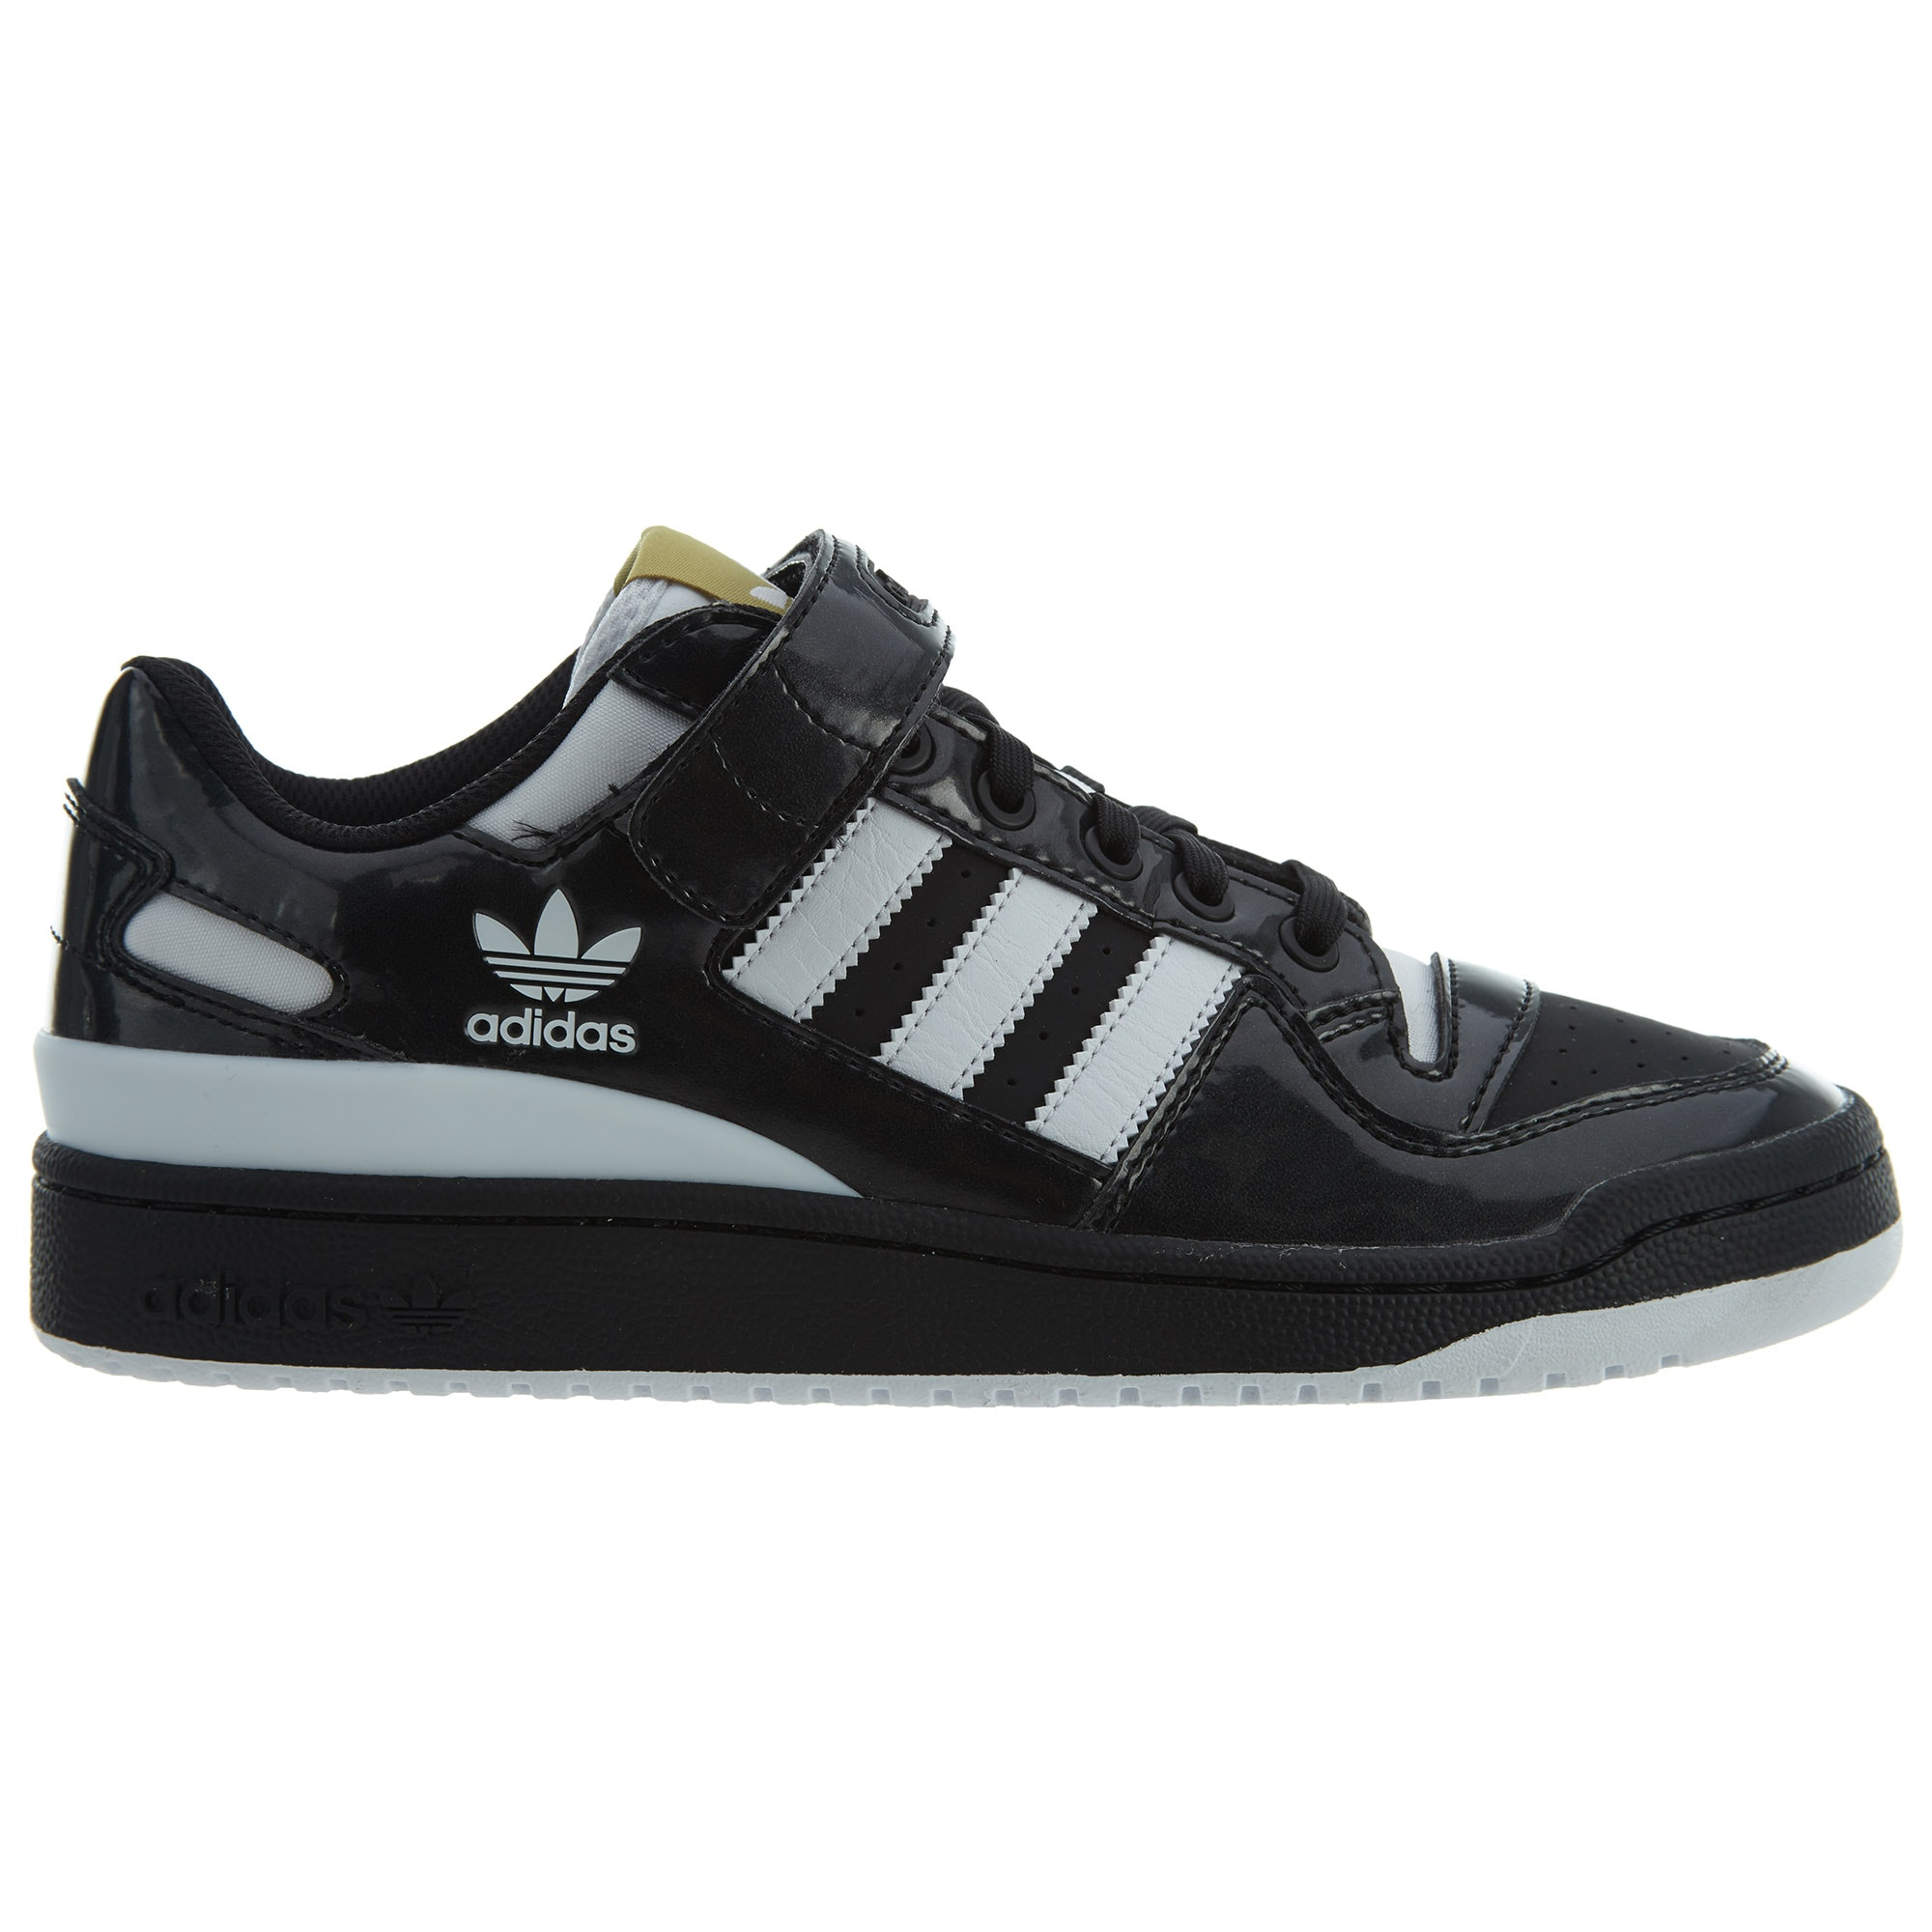 adidas Forum Lo Black White-Gold Metallic